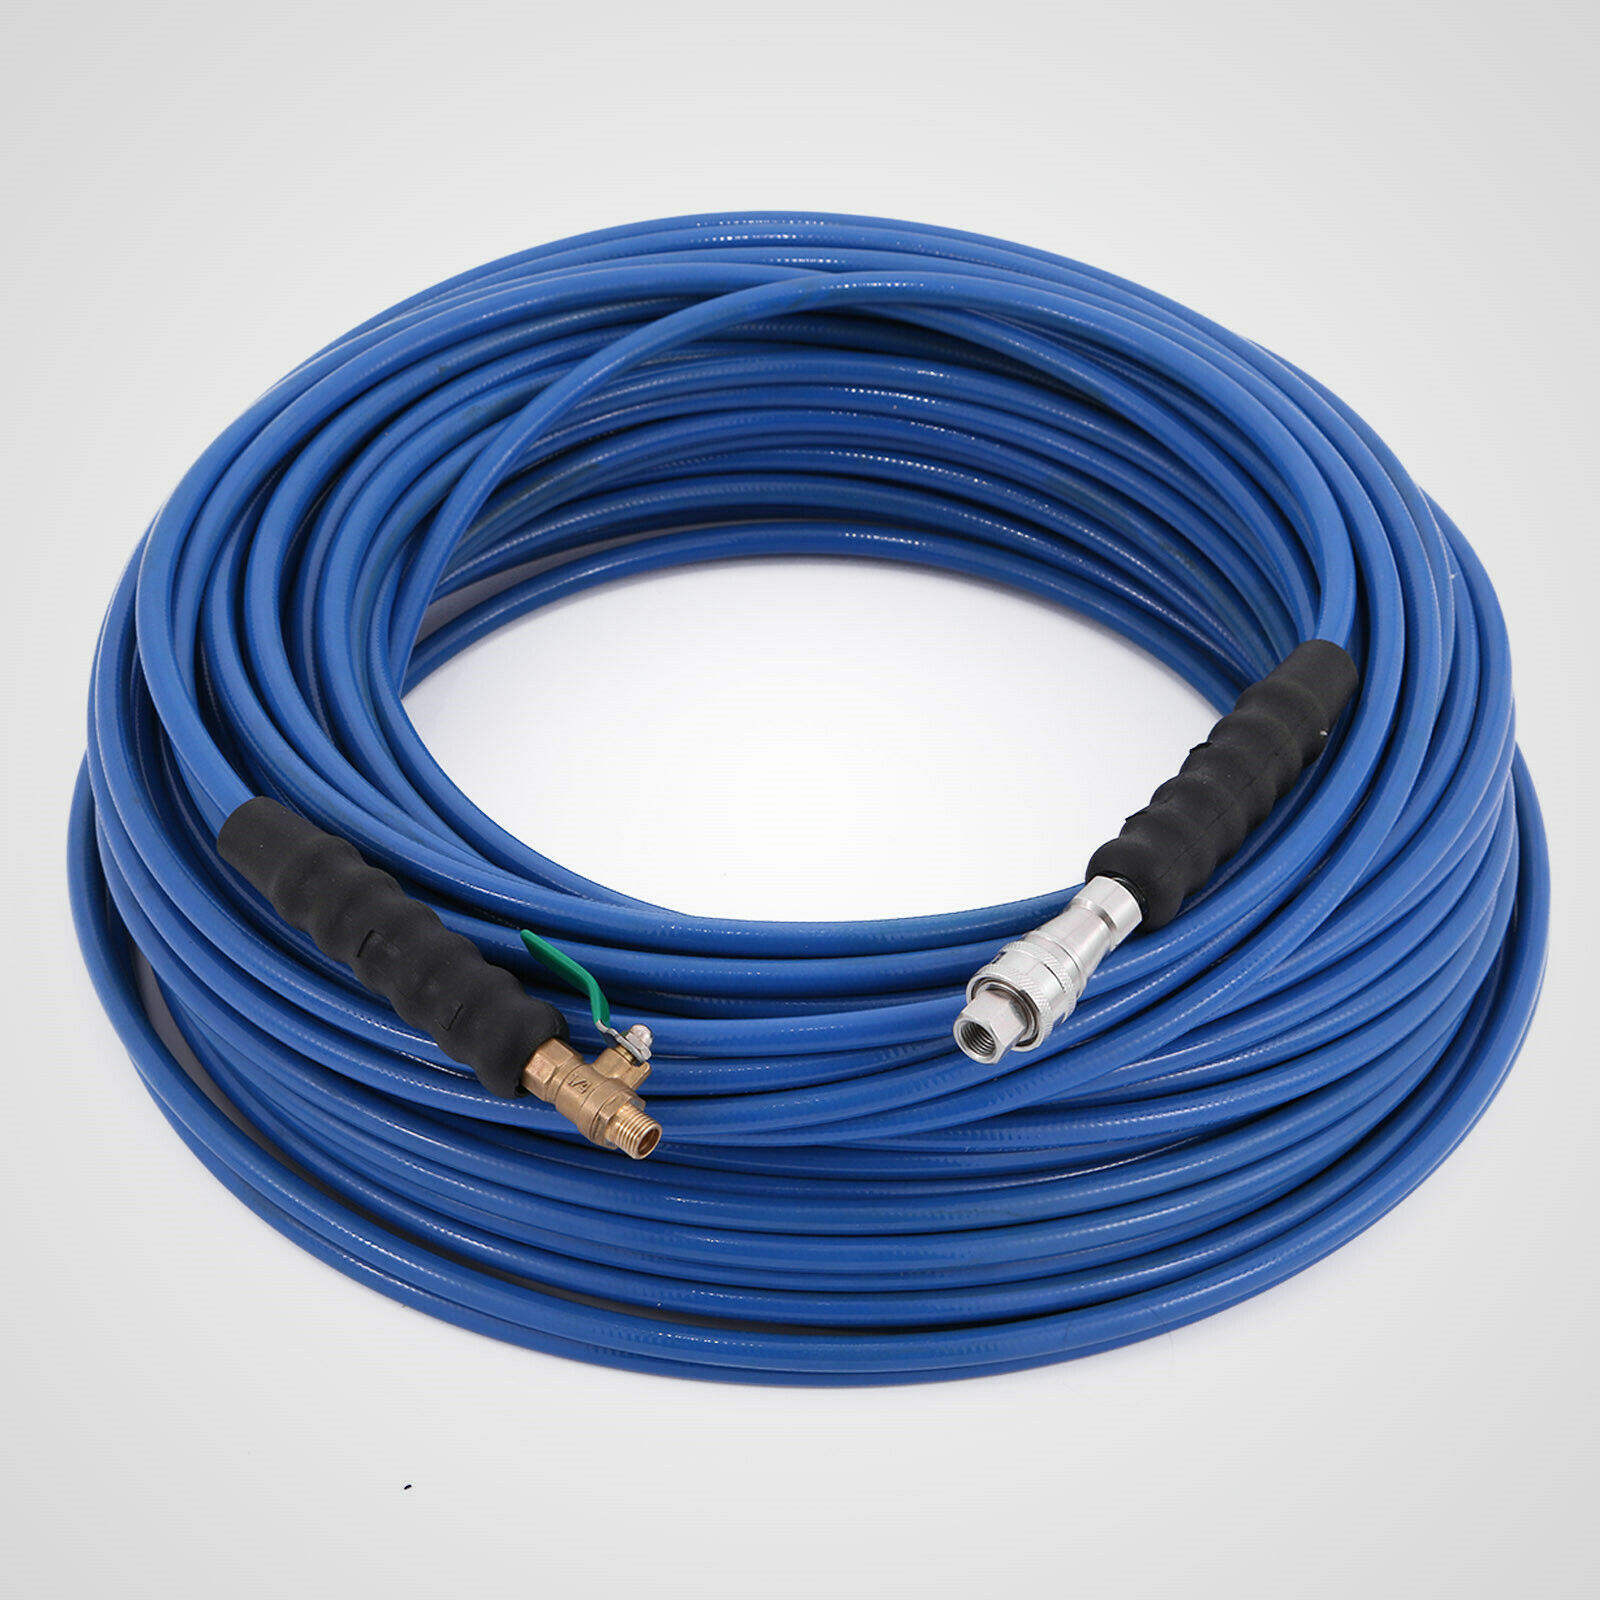 "Pressure Washer Hose Carpet Cleaning Hose 1//4/"" 75ft Hose Braided Polyester"